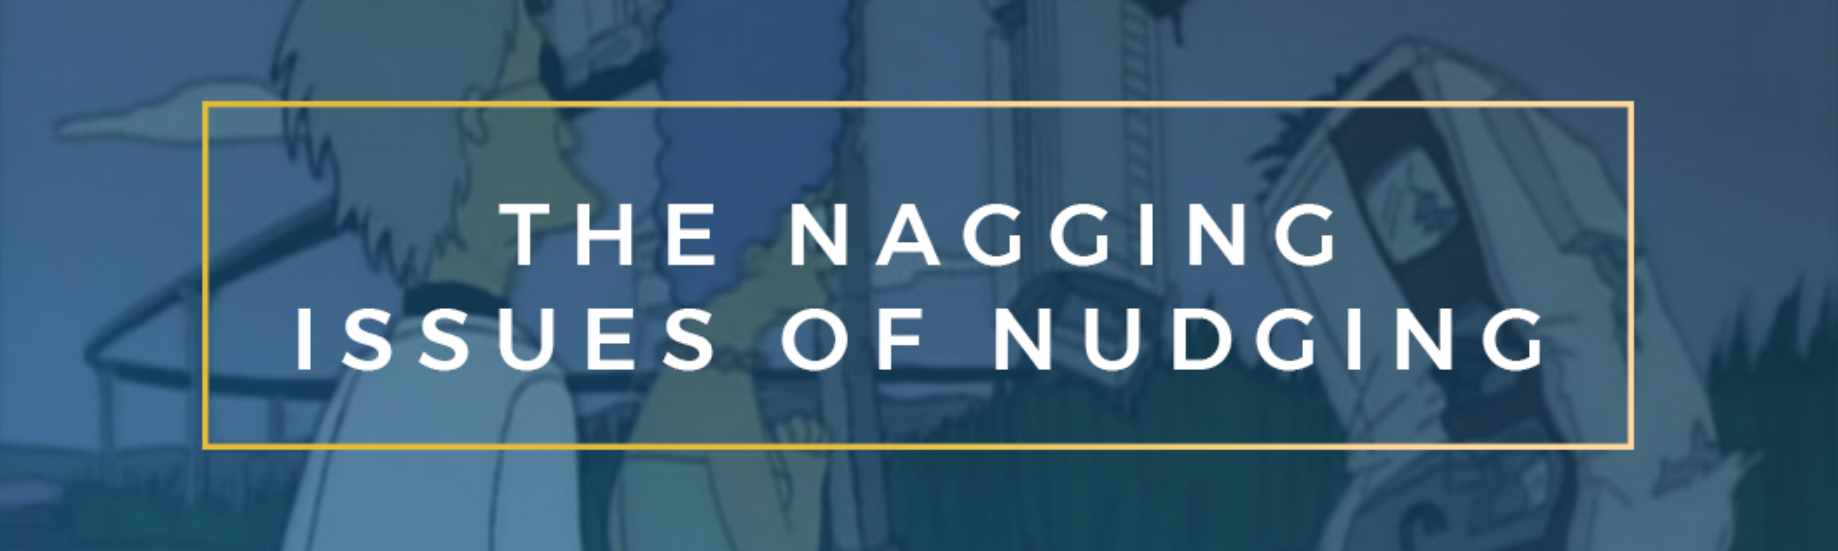 The Nagging Issues of Nudging - Practical Motivation Science